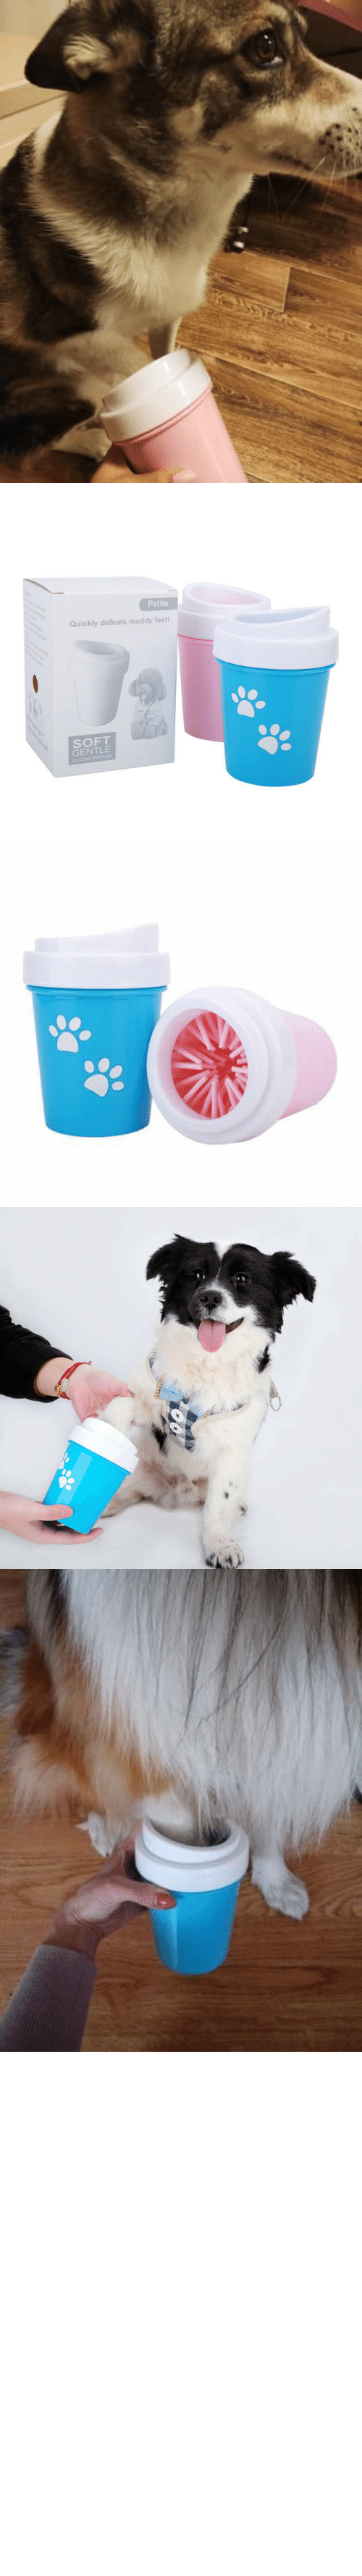 "coupon: awesomage:   PAW CLEANER     Now your best friend can have all the muddy dirty fun he wants without bringing it all into your home or vehicle.    30% OFF plus Free Worldwide Shipping with coupon code ""CUDDLING""    All funds gathered will be donated for rescue dog shelters    SUPPORTS US NOW, ORDER AND SHARE OUR CAUSE!https://www.doggiemon.com/products/paw-cleaner"